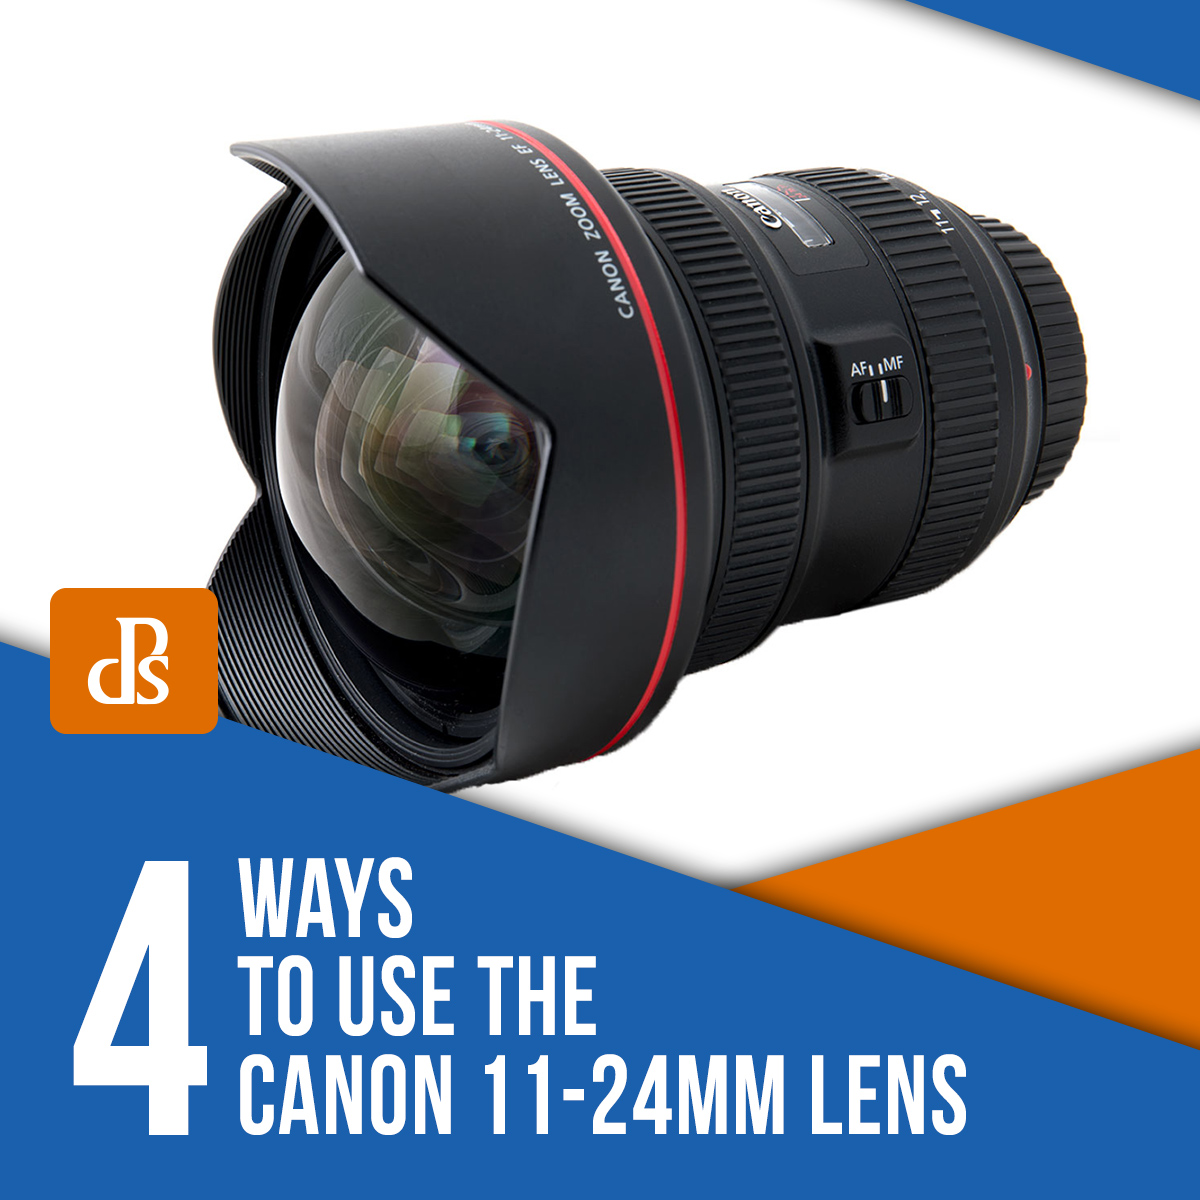 4-ways-to-use-the-canon-11-24mm-lens